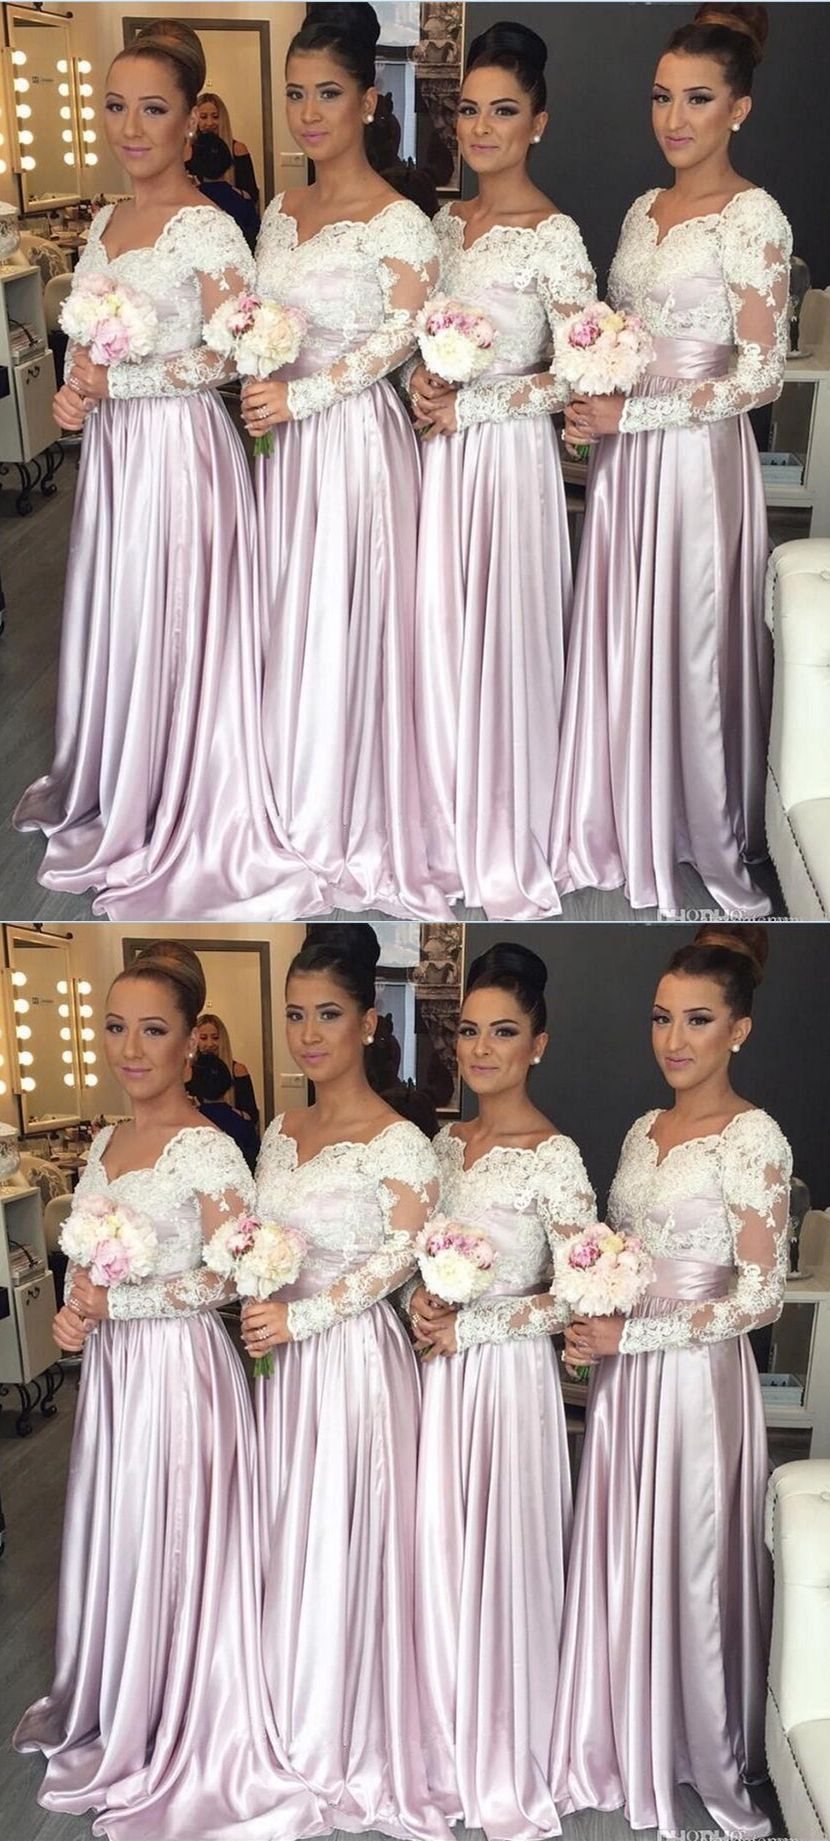 Lilac bridesmaid dresses with long sleeves chic wedding party